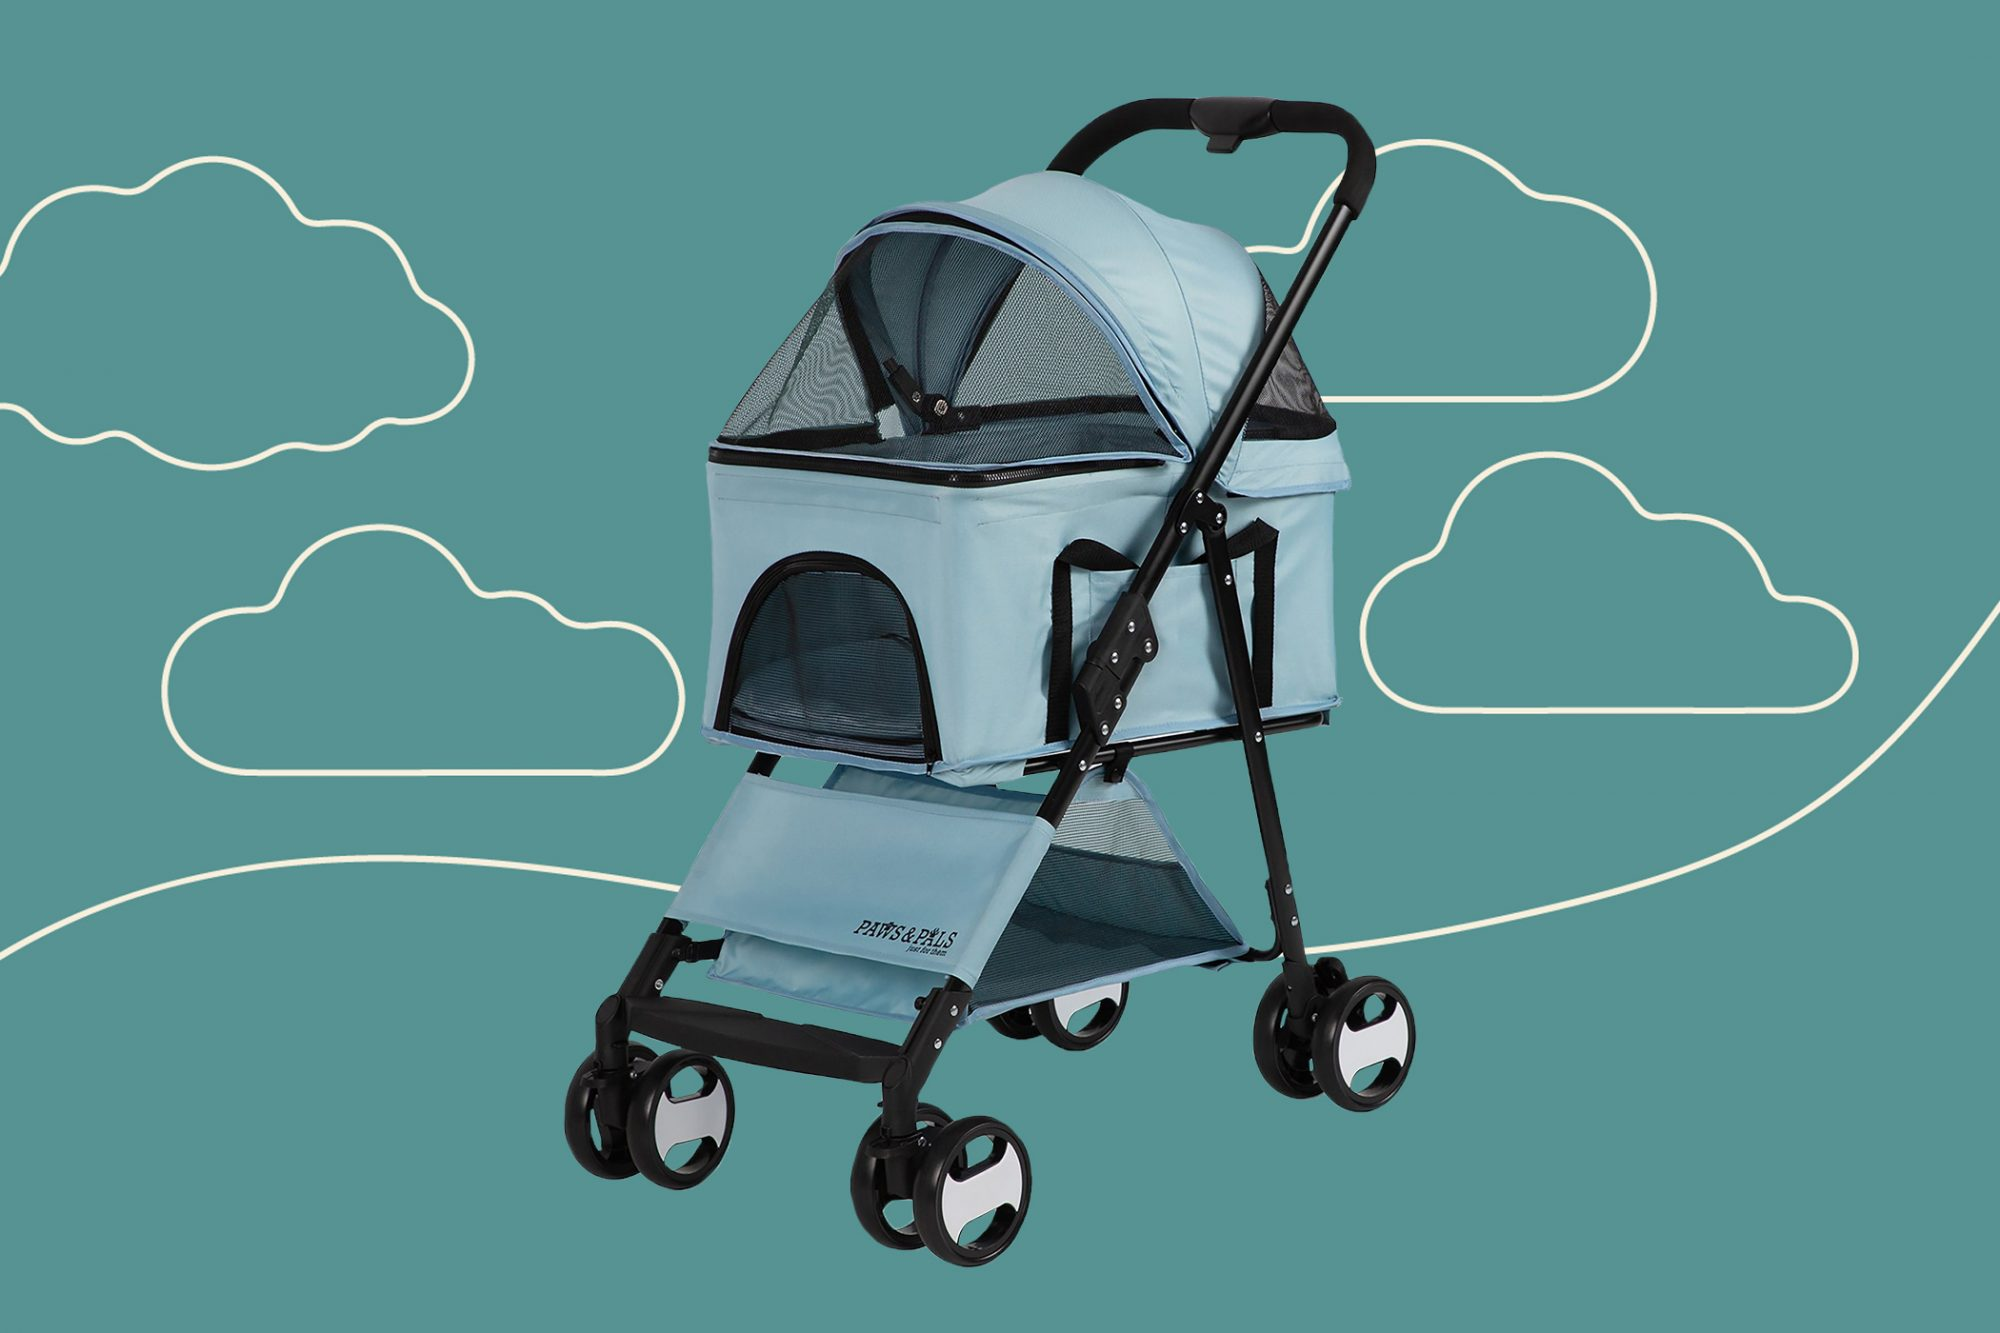 Light blue paws and pals stroller against a turquoise illustration